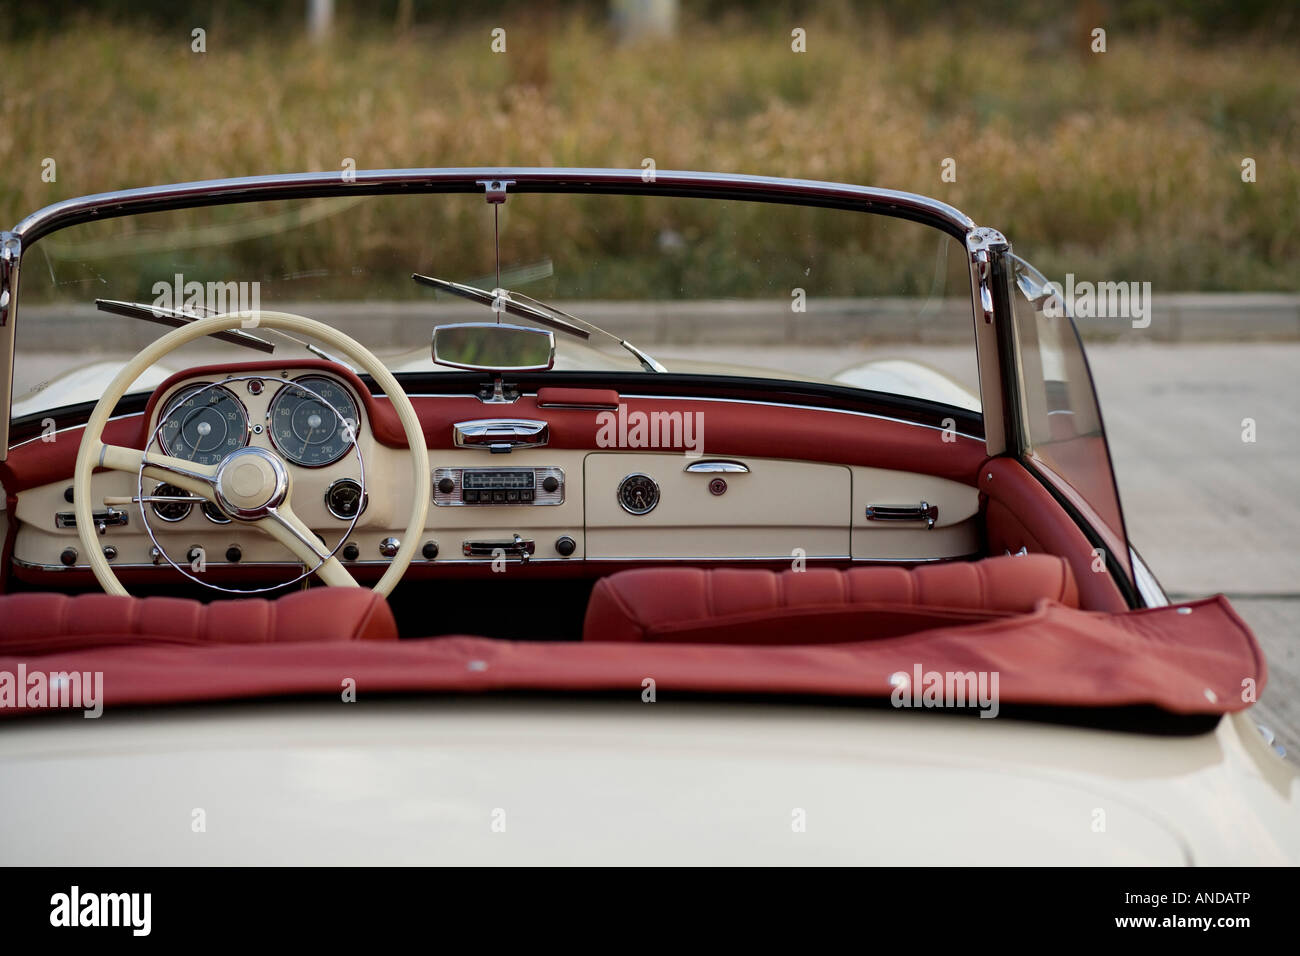 Detail of a vintage sport luxury car. - Stock Image